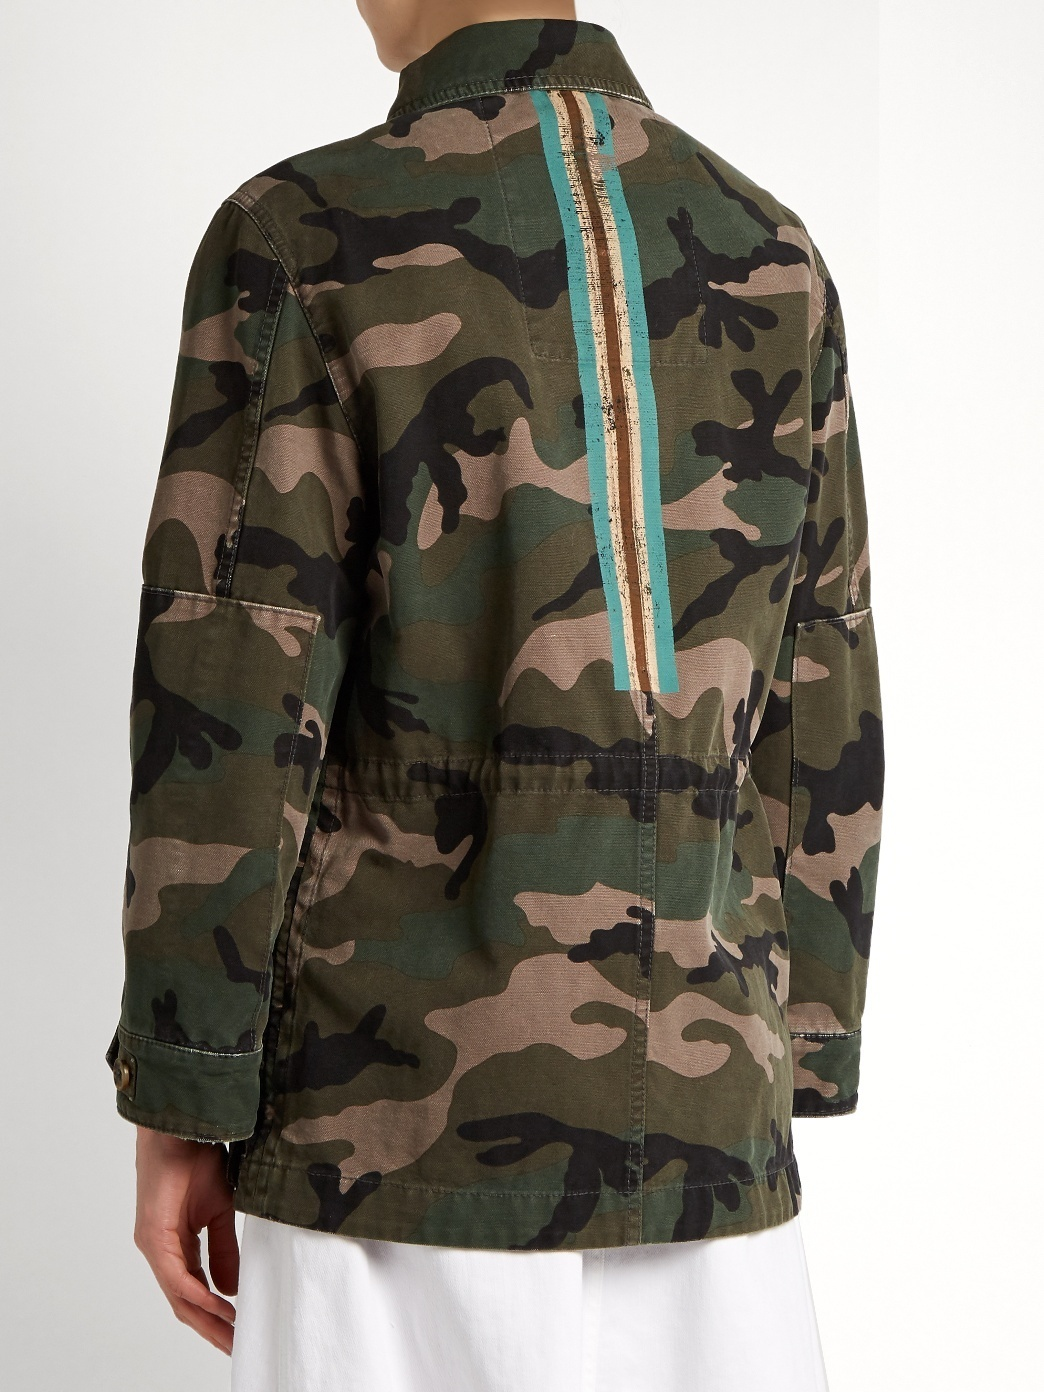 17SS V670 CAMOUFLAGE PRINTED COTTON MILITARY JACKET